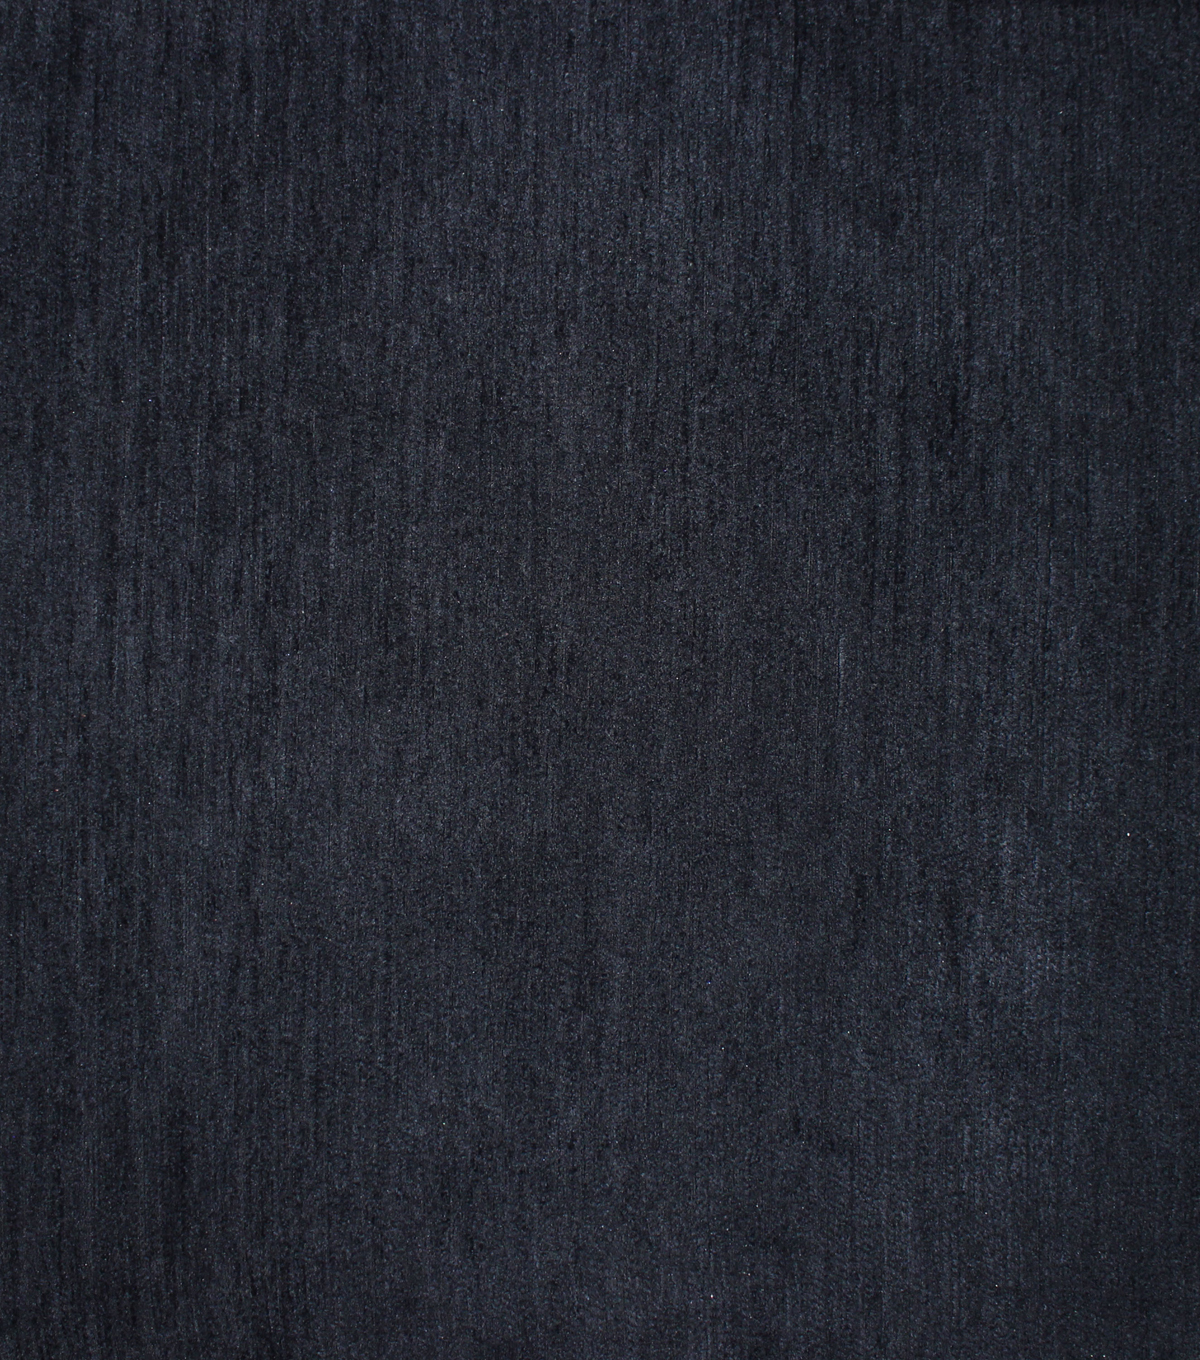 Barrow Multi-Purpose Decor Fabric 57\u0022-Ebony